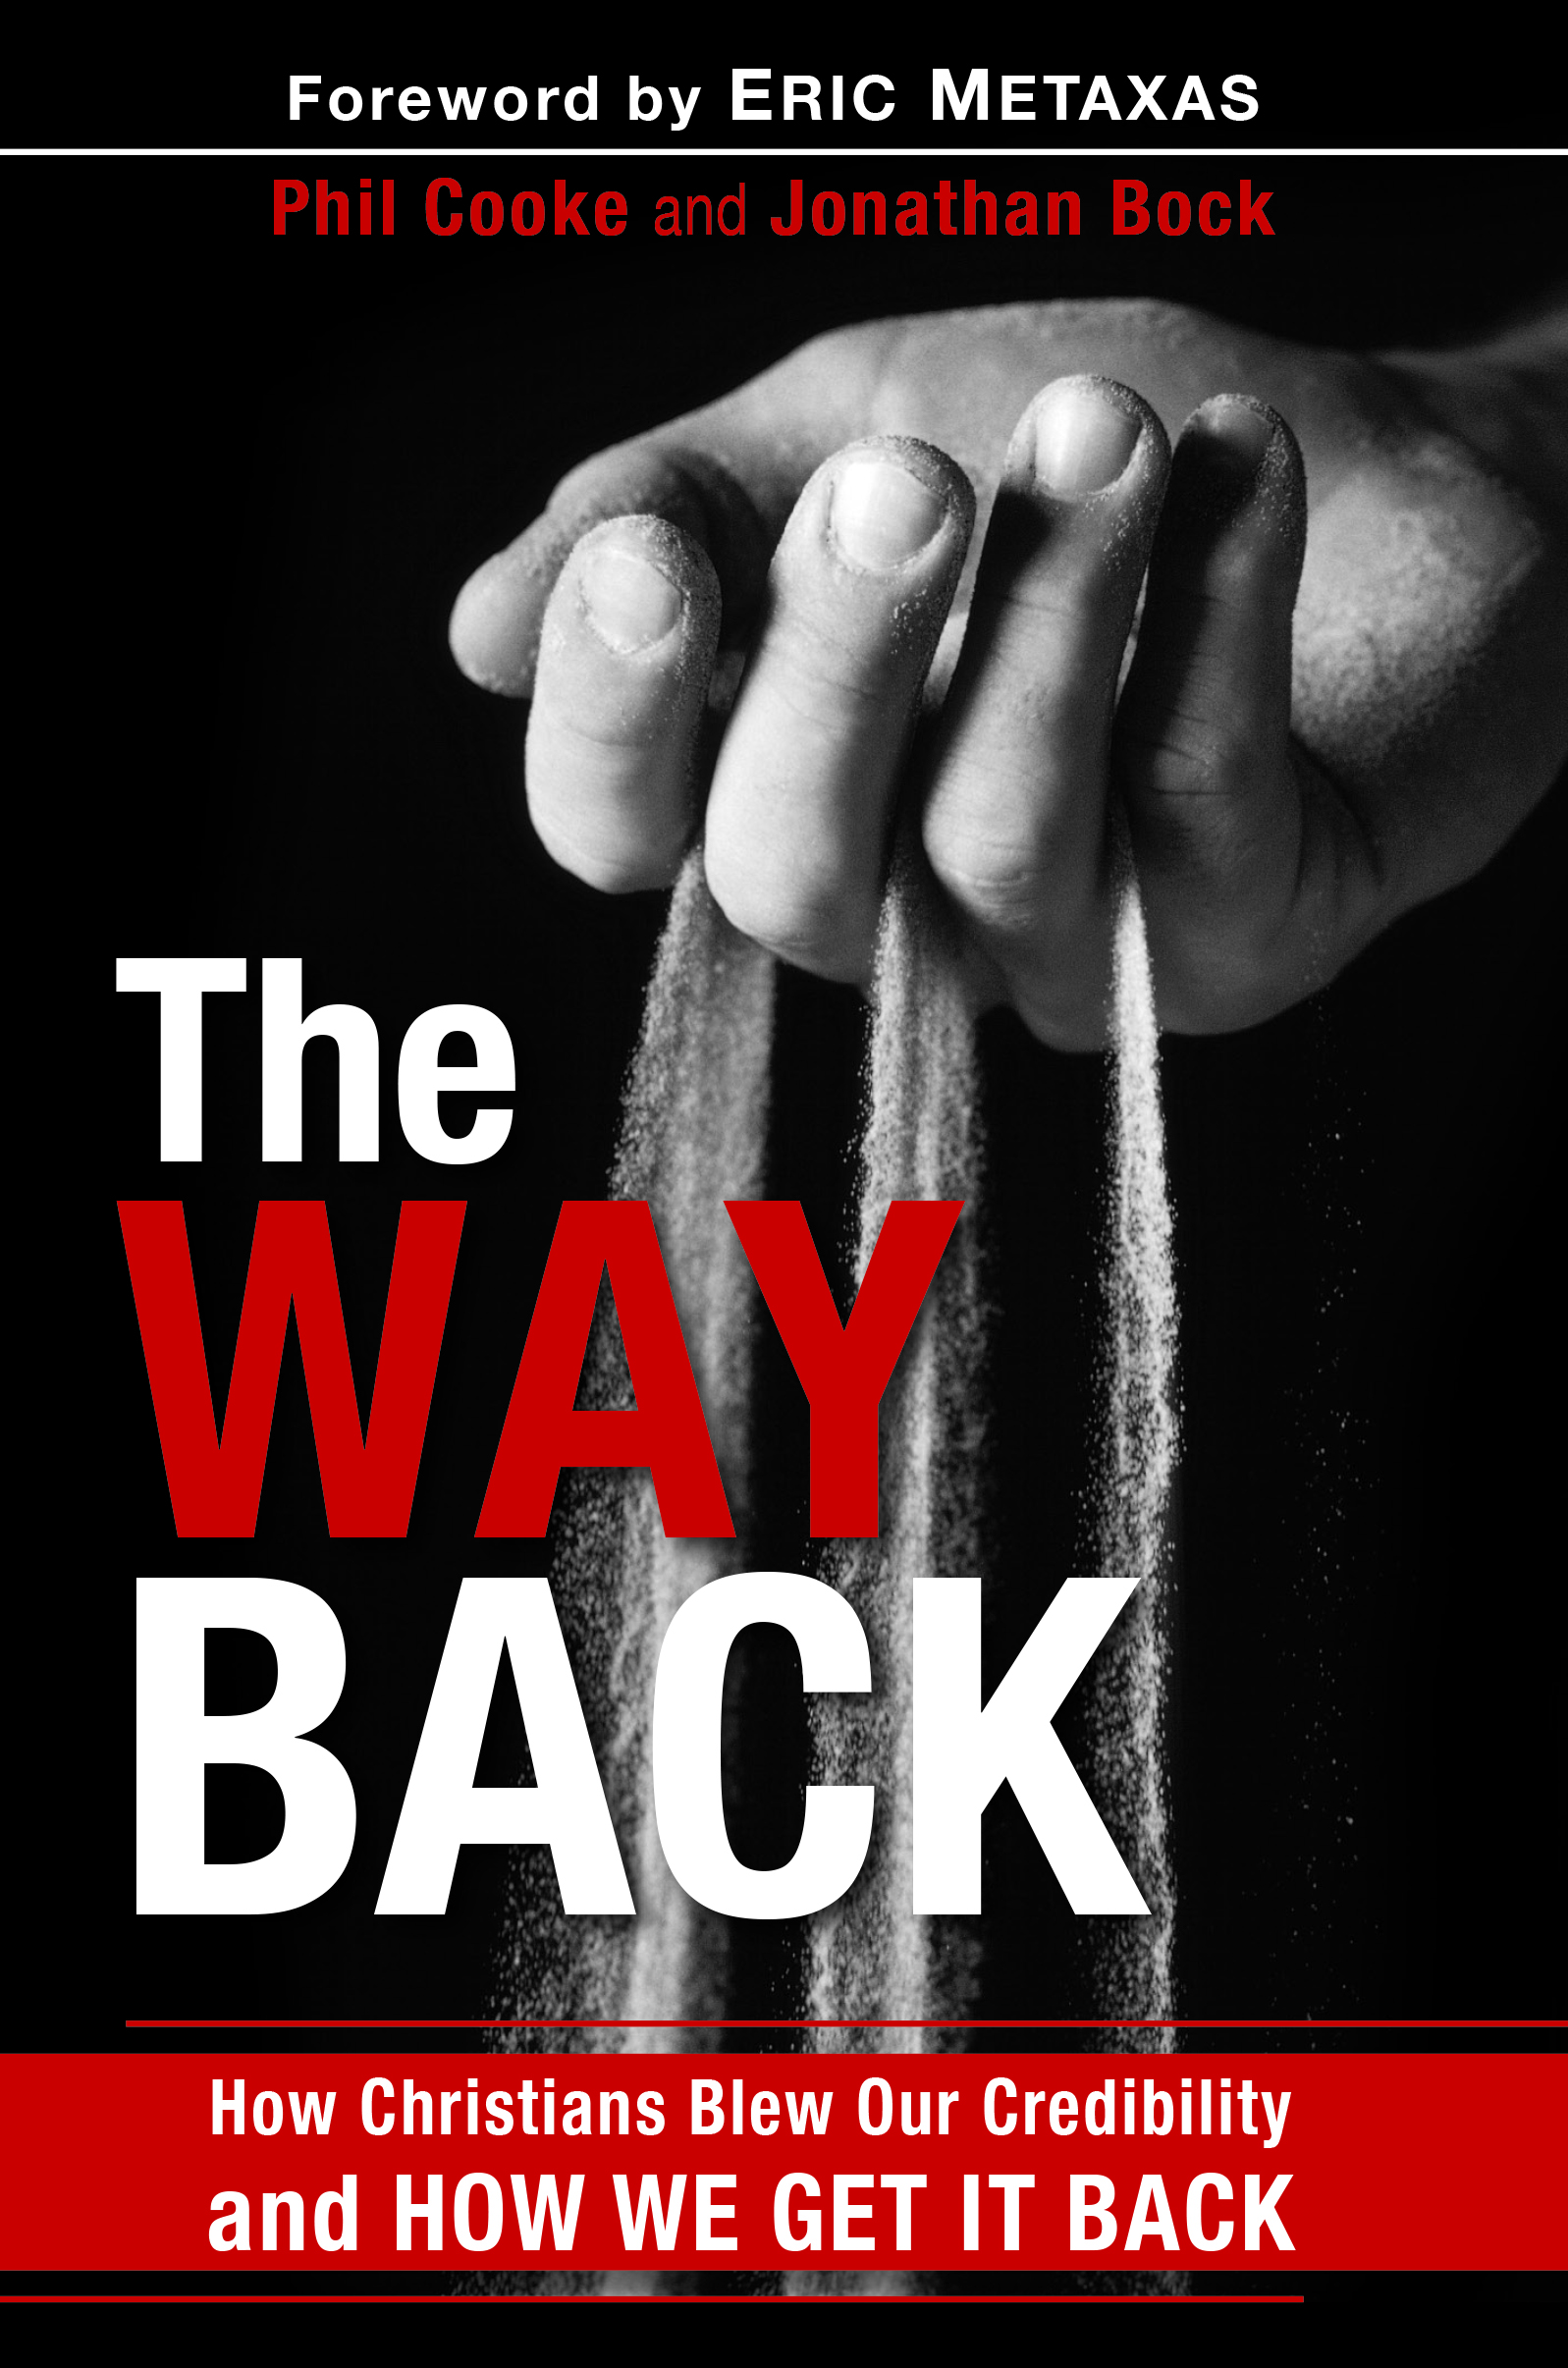 The Way Back with Jonathon Bock | Enraging Culture